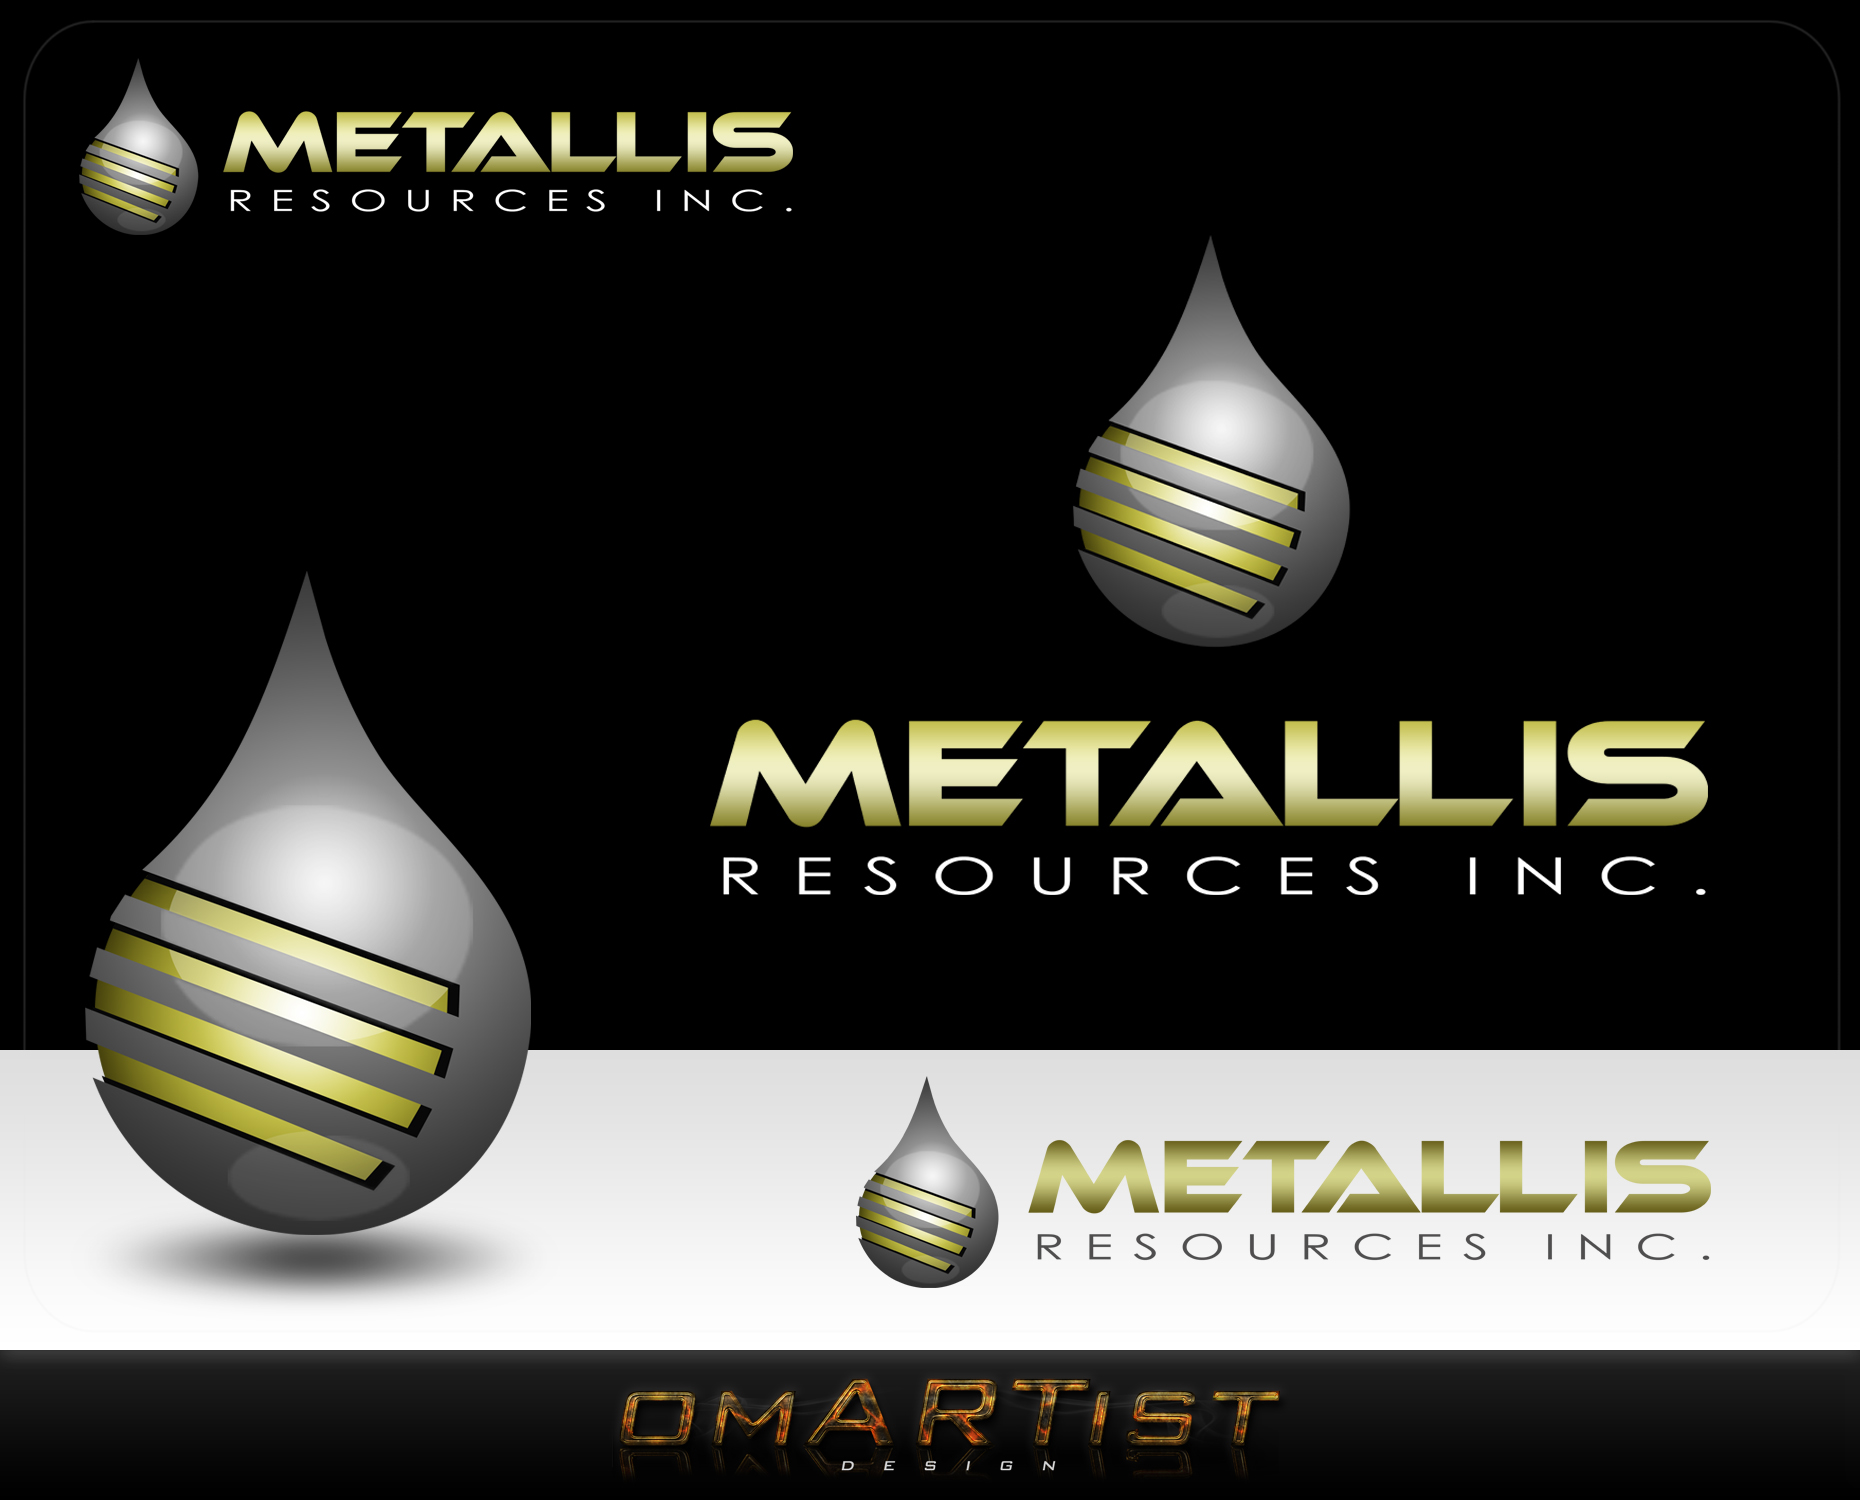 Logo Design by omARTist - Entry No. 161 in the Logo Design Contest Metallis Resources Inc Logo Design.